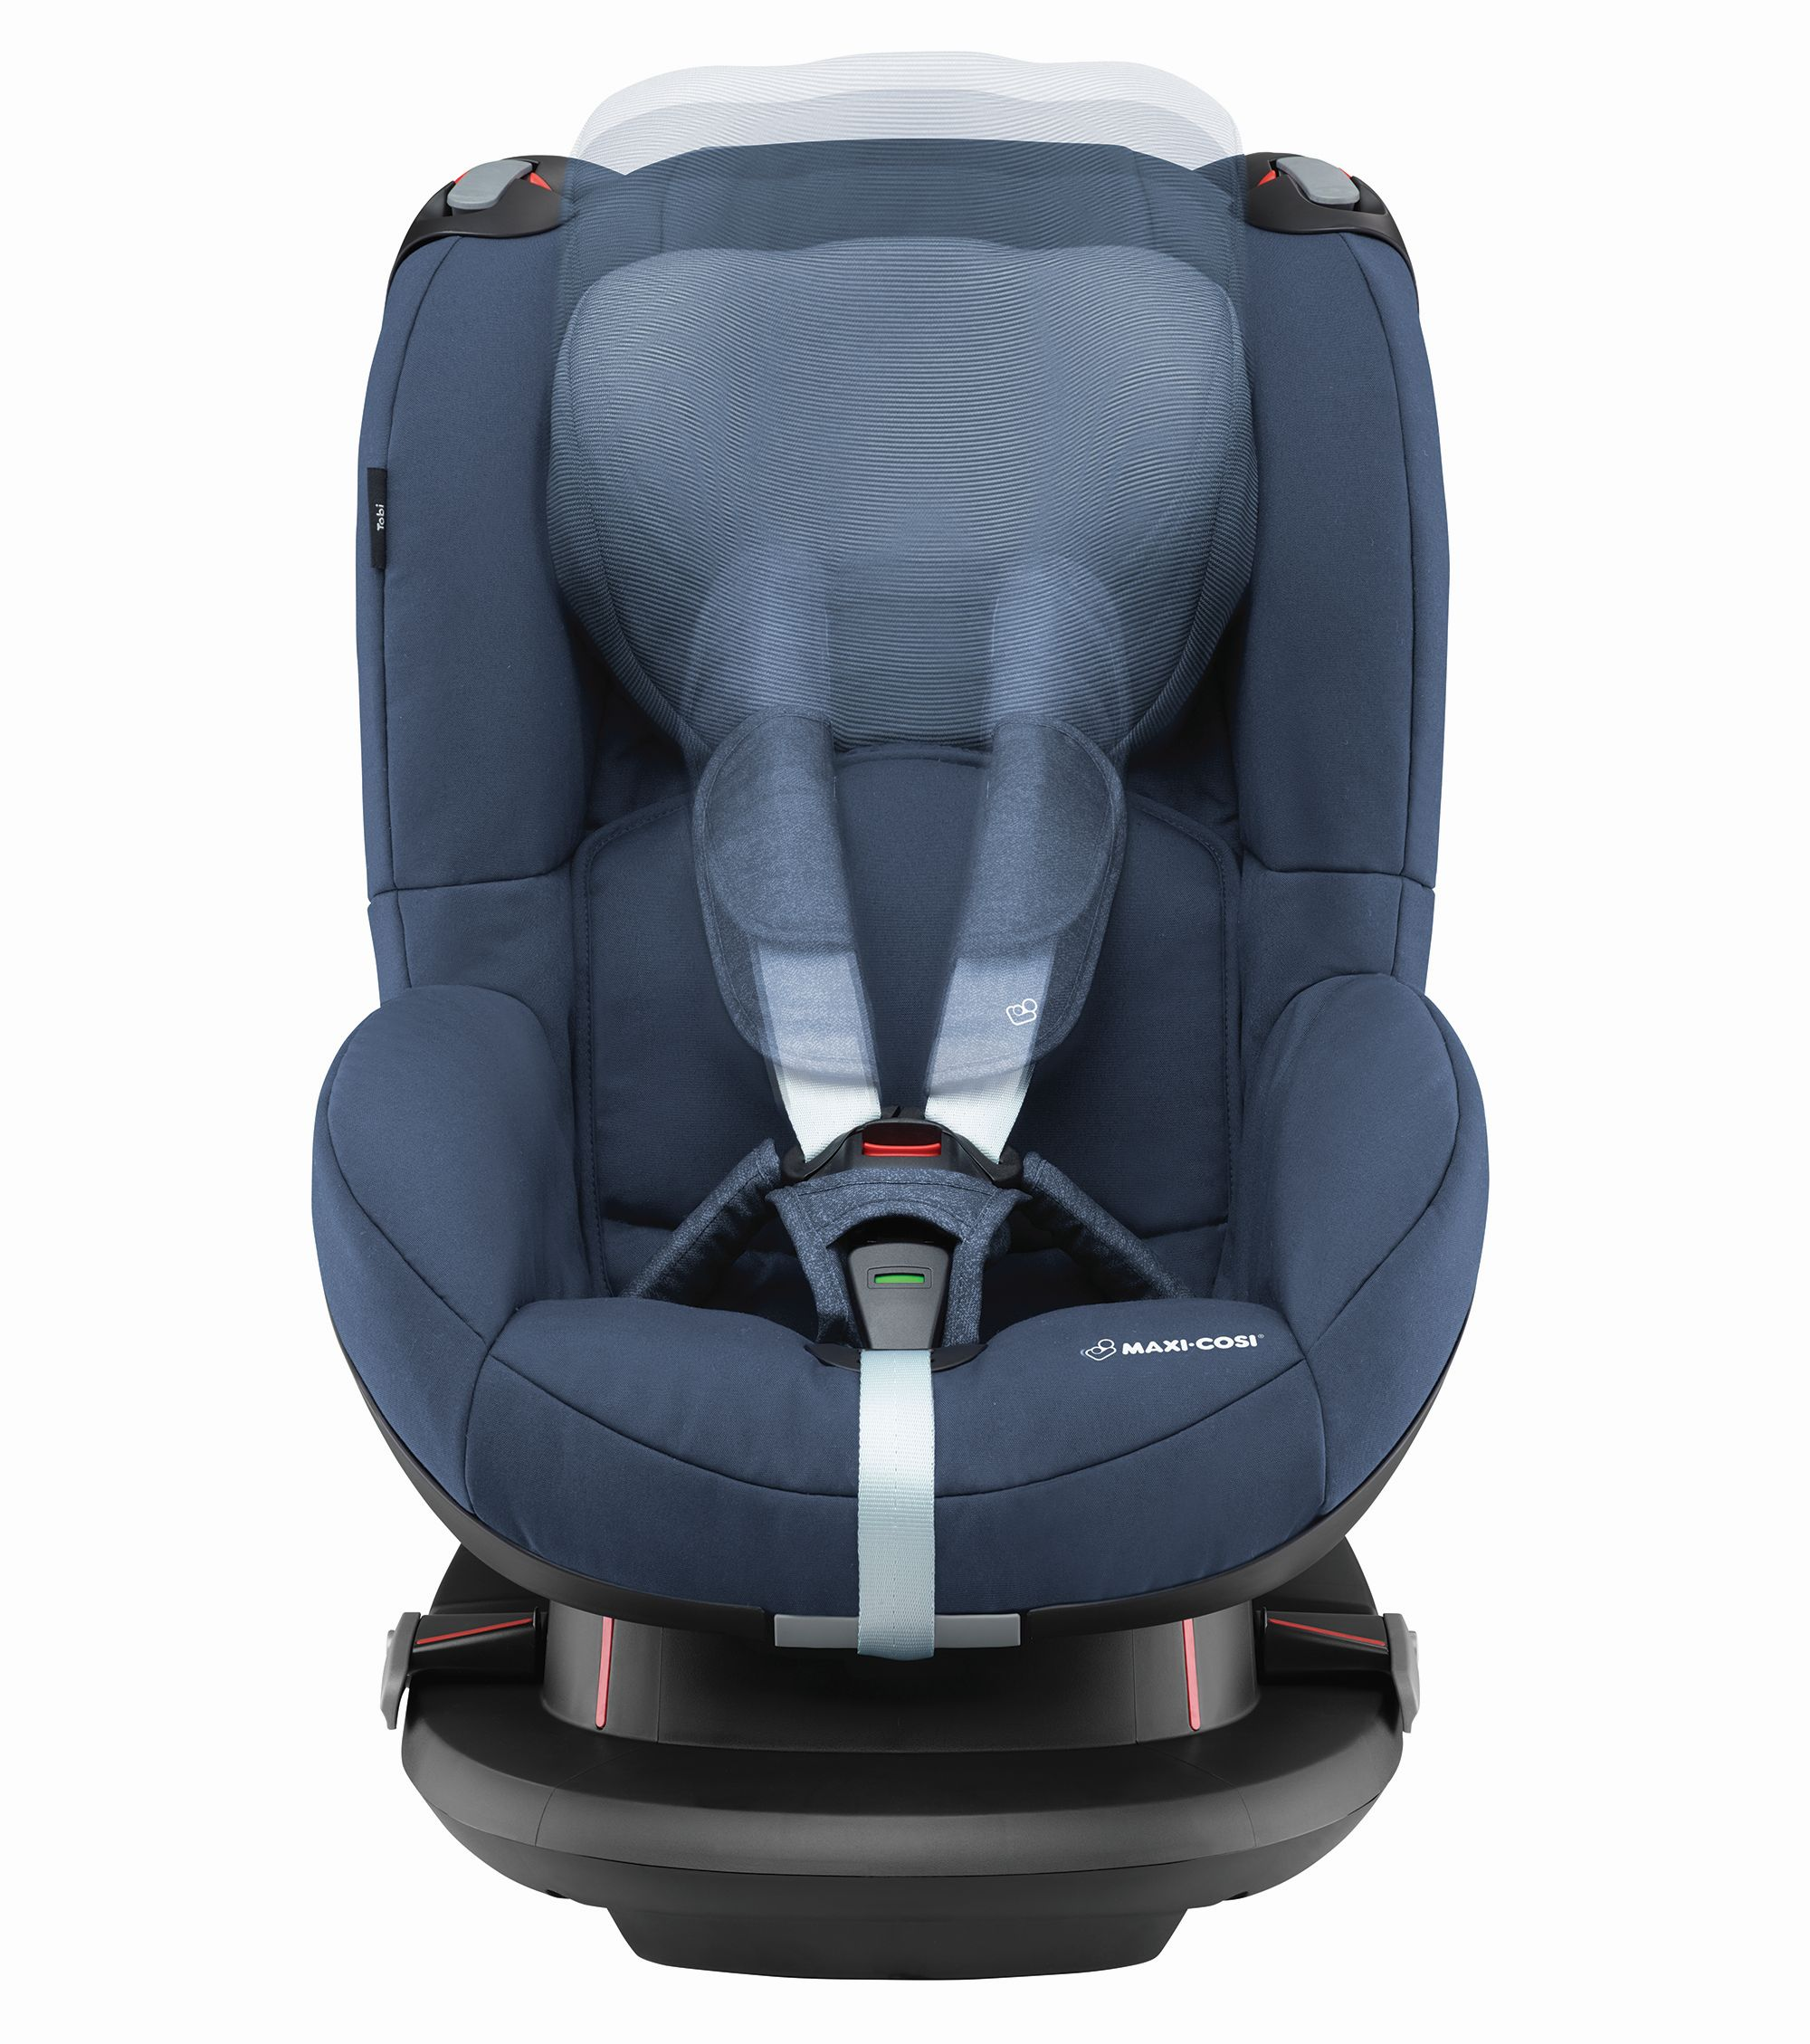 maxi cosi black raven car seat maxi cosi child car seat tobi 2017 black raven buy at maxi cosi. Black Bedroom Furniture Sets. Home Design Ideas